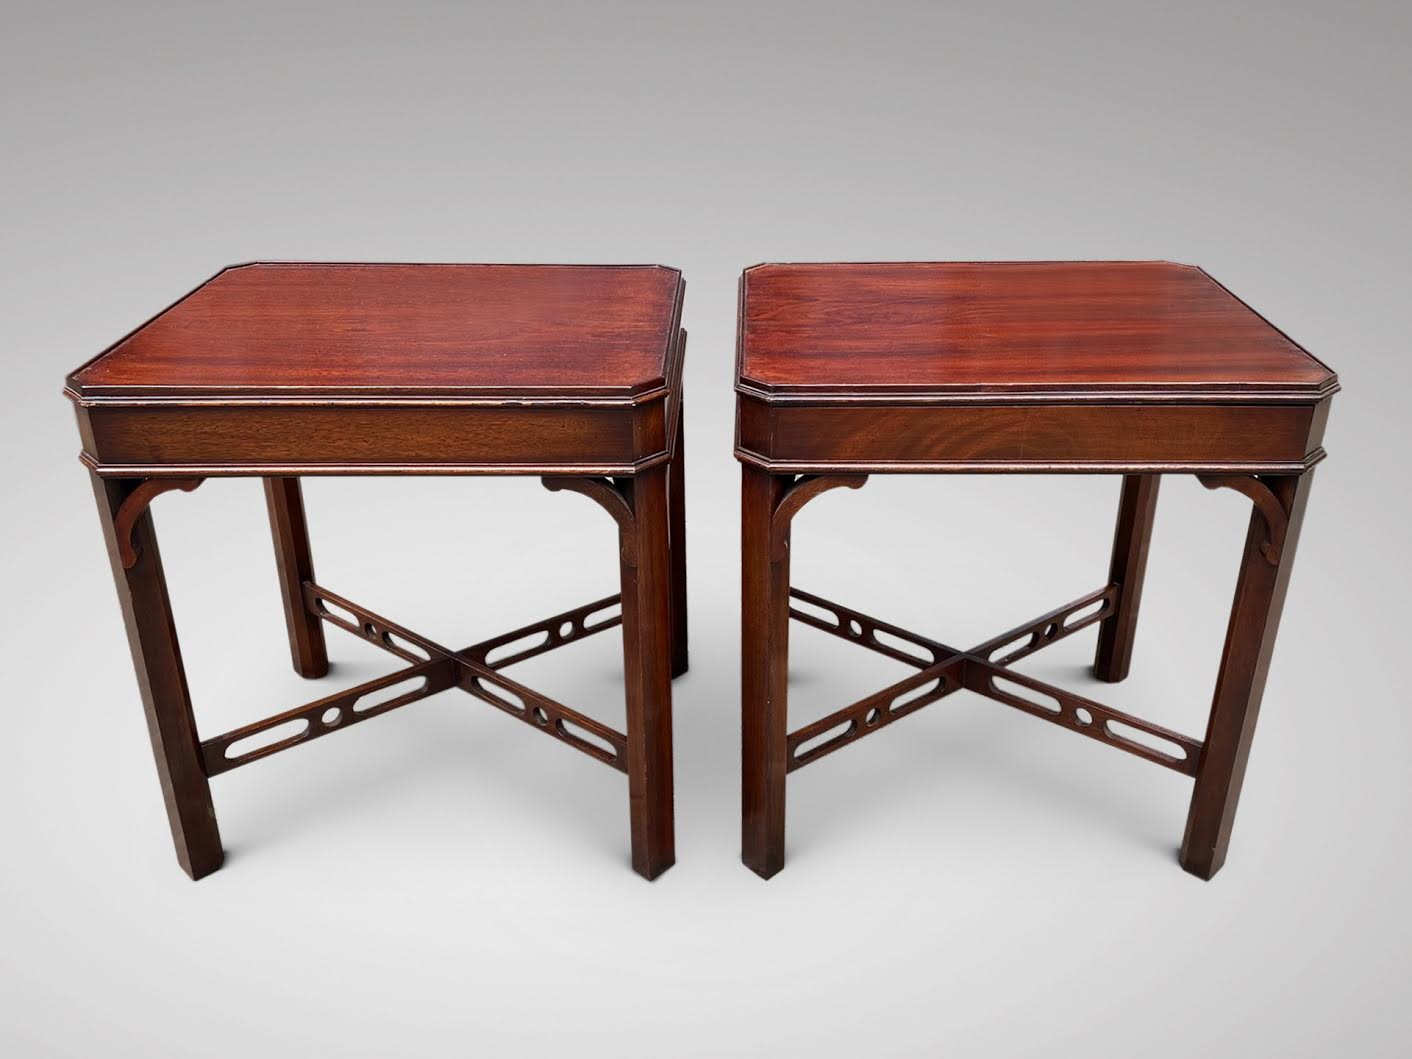 PAIR OF MAHOGANY OCCASIONAL SIDE TABLES